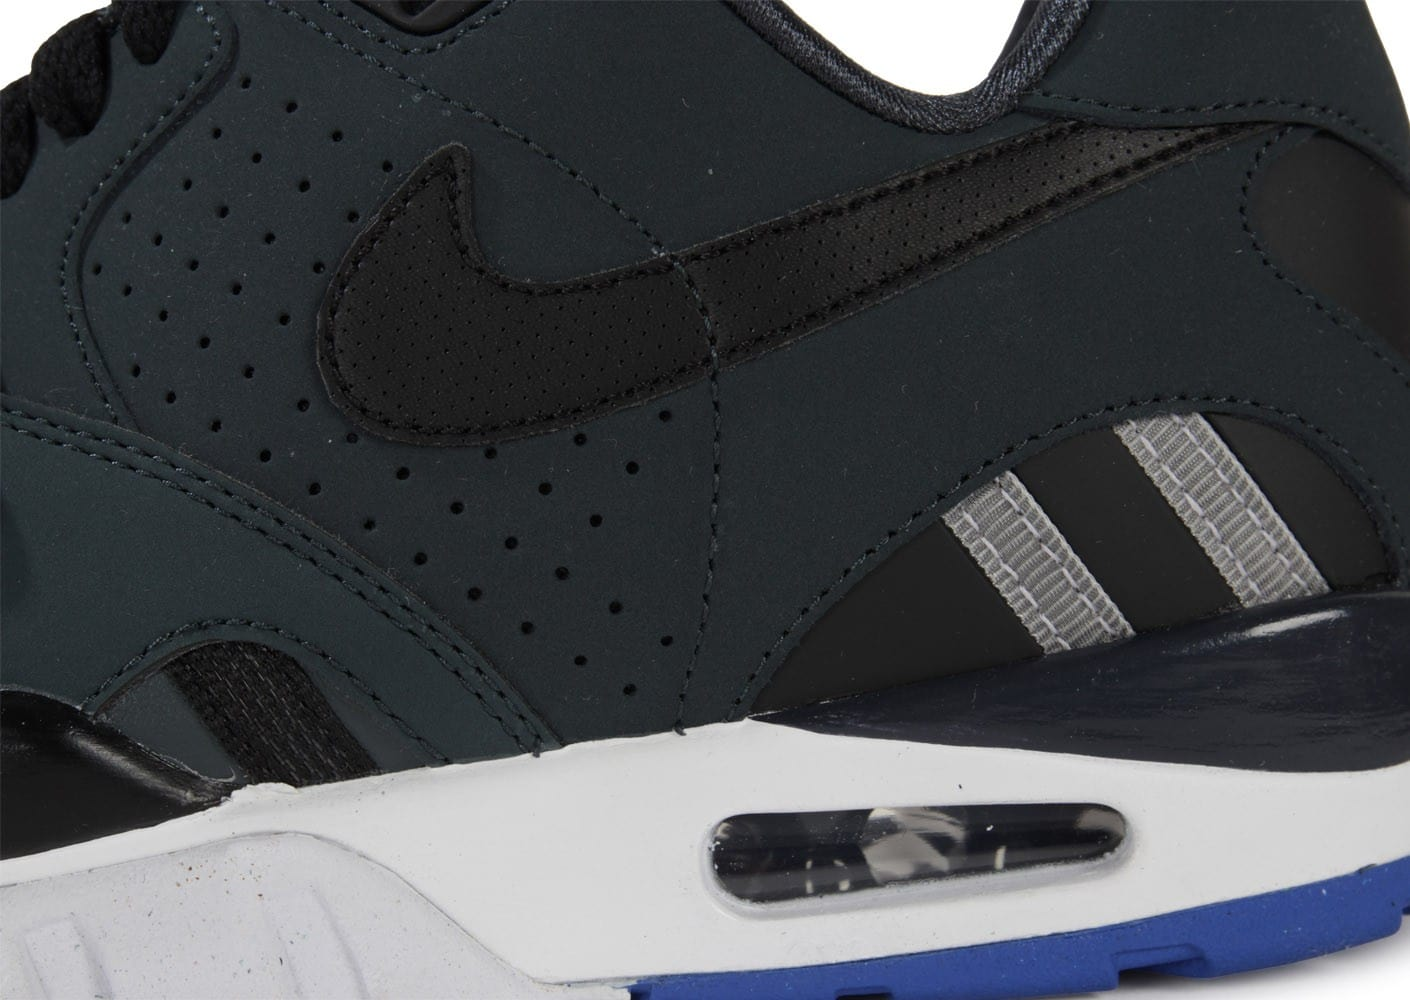 buy popular 40bac a71fb ... Chaussures Nike Air Trainer Sc Ii Low Noire vue dessus